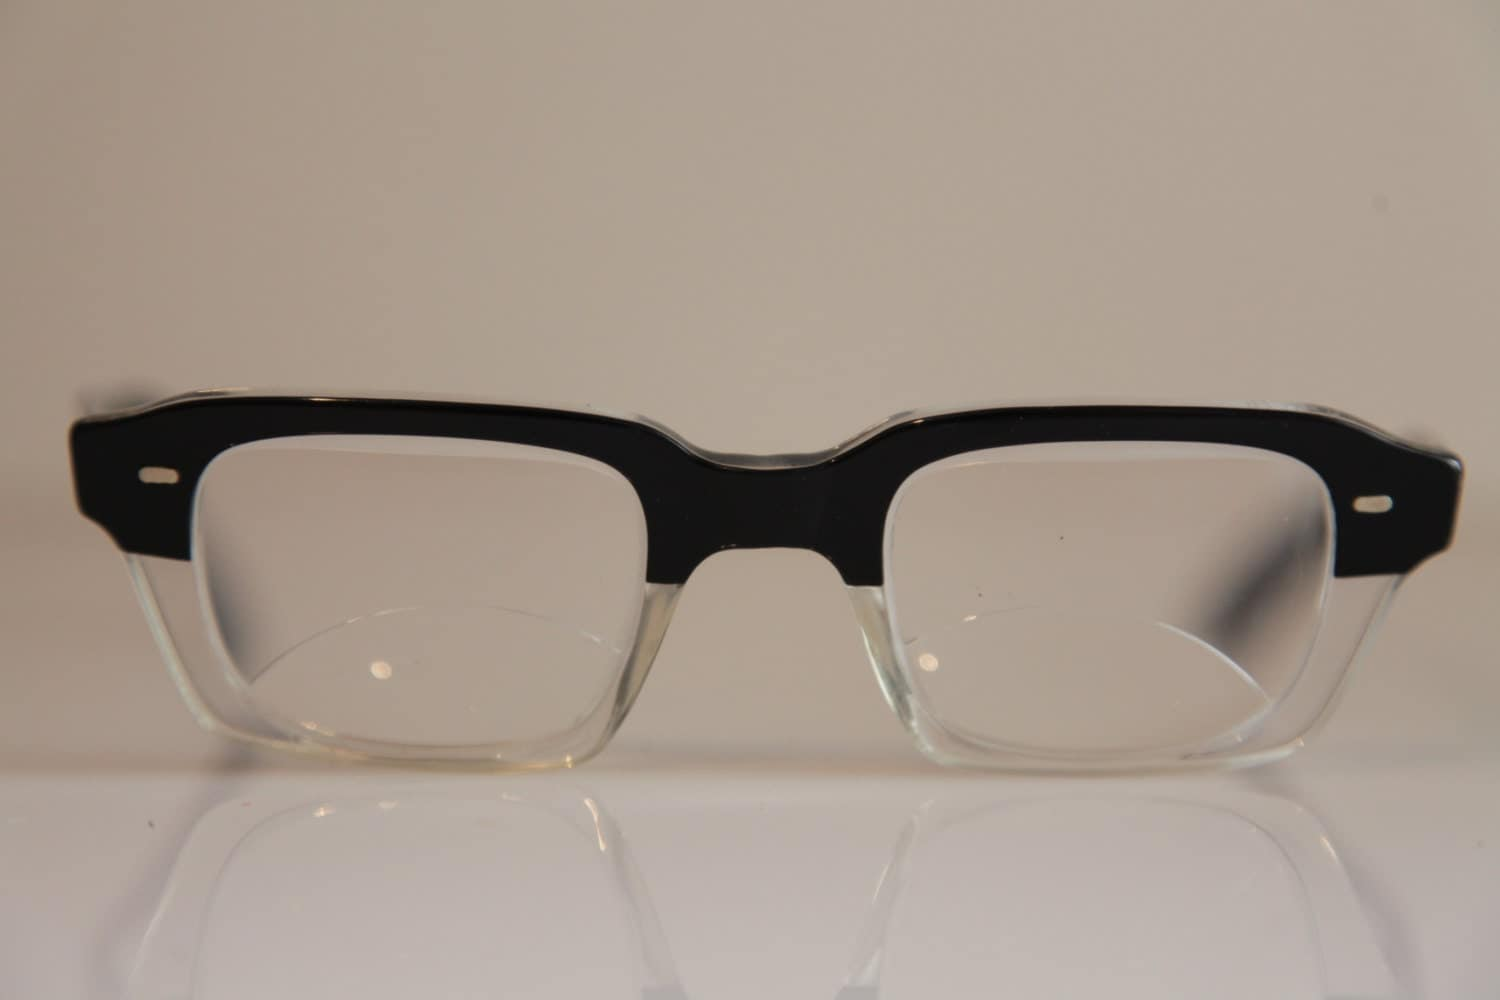 Eyeglasses Frame Made In Germany : Vintage WINTER Eyewear, Crystal and Black Frame, RX-Able ...